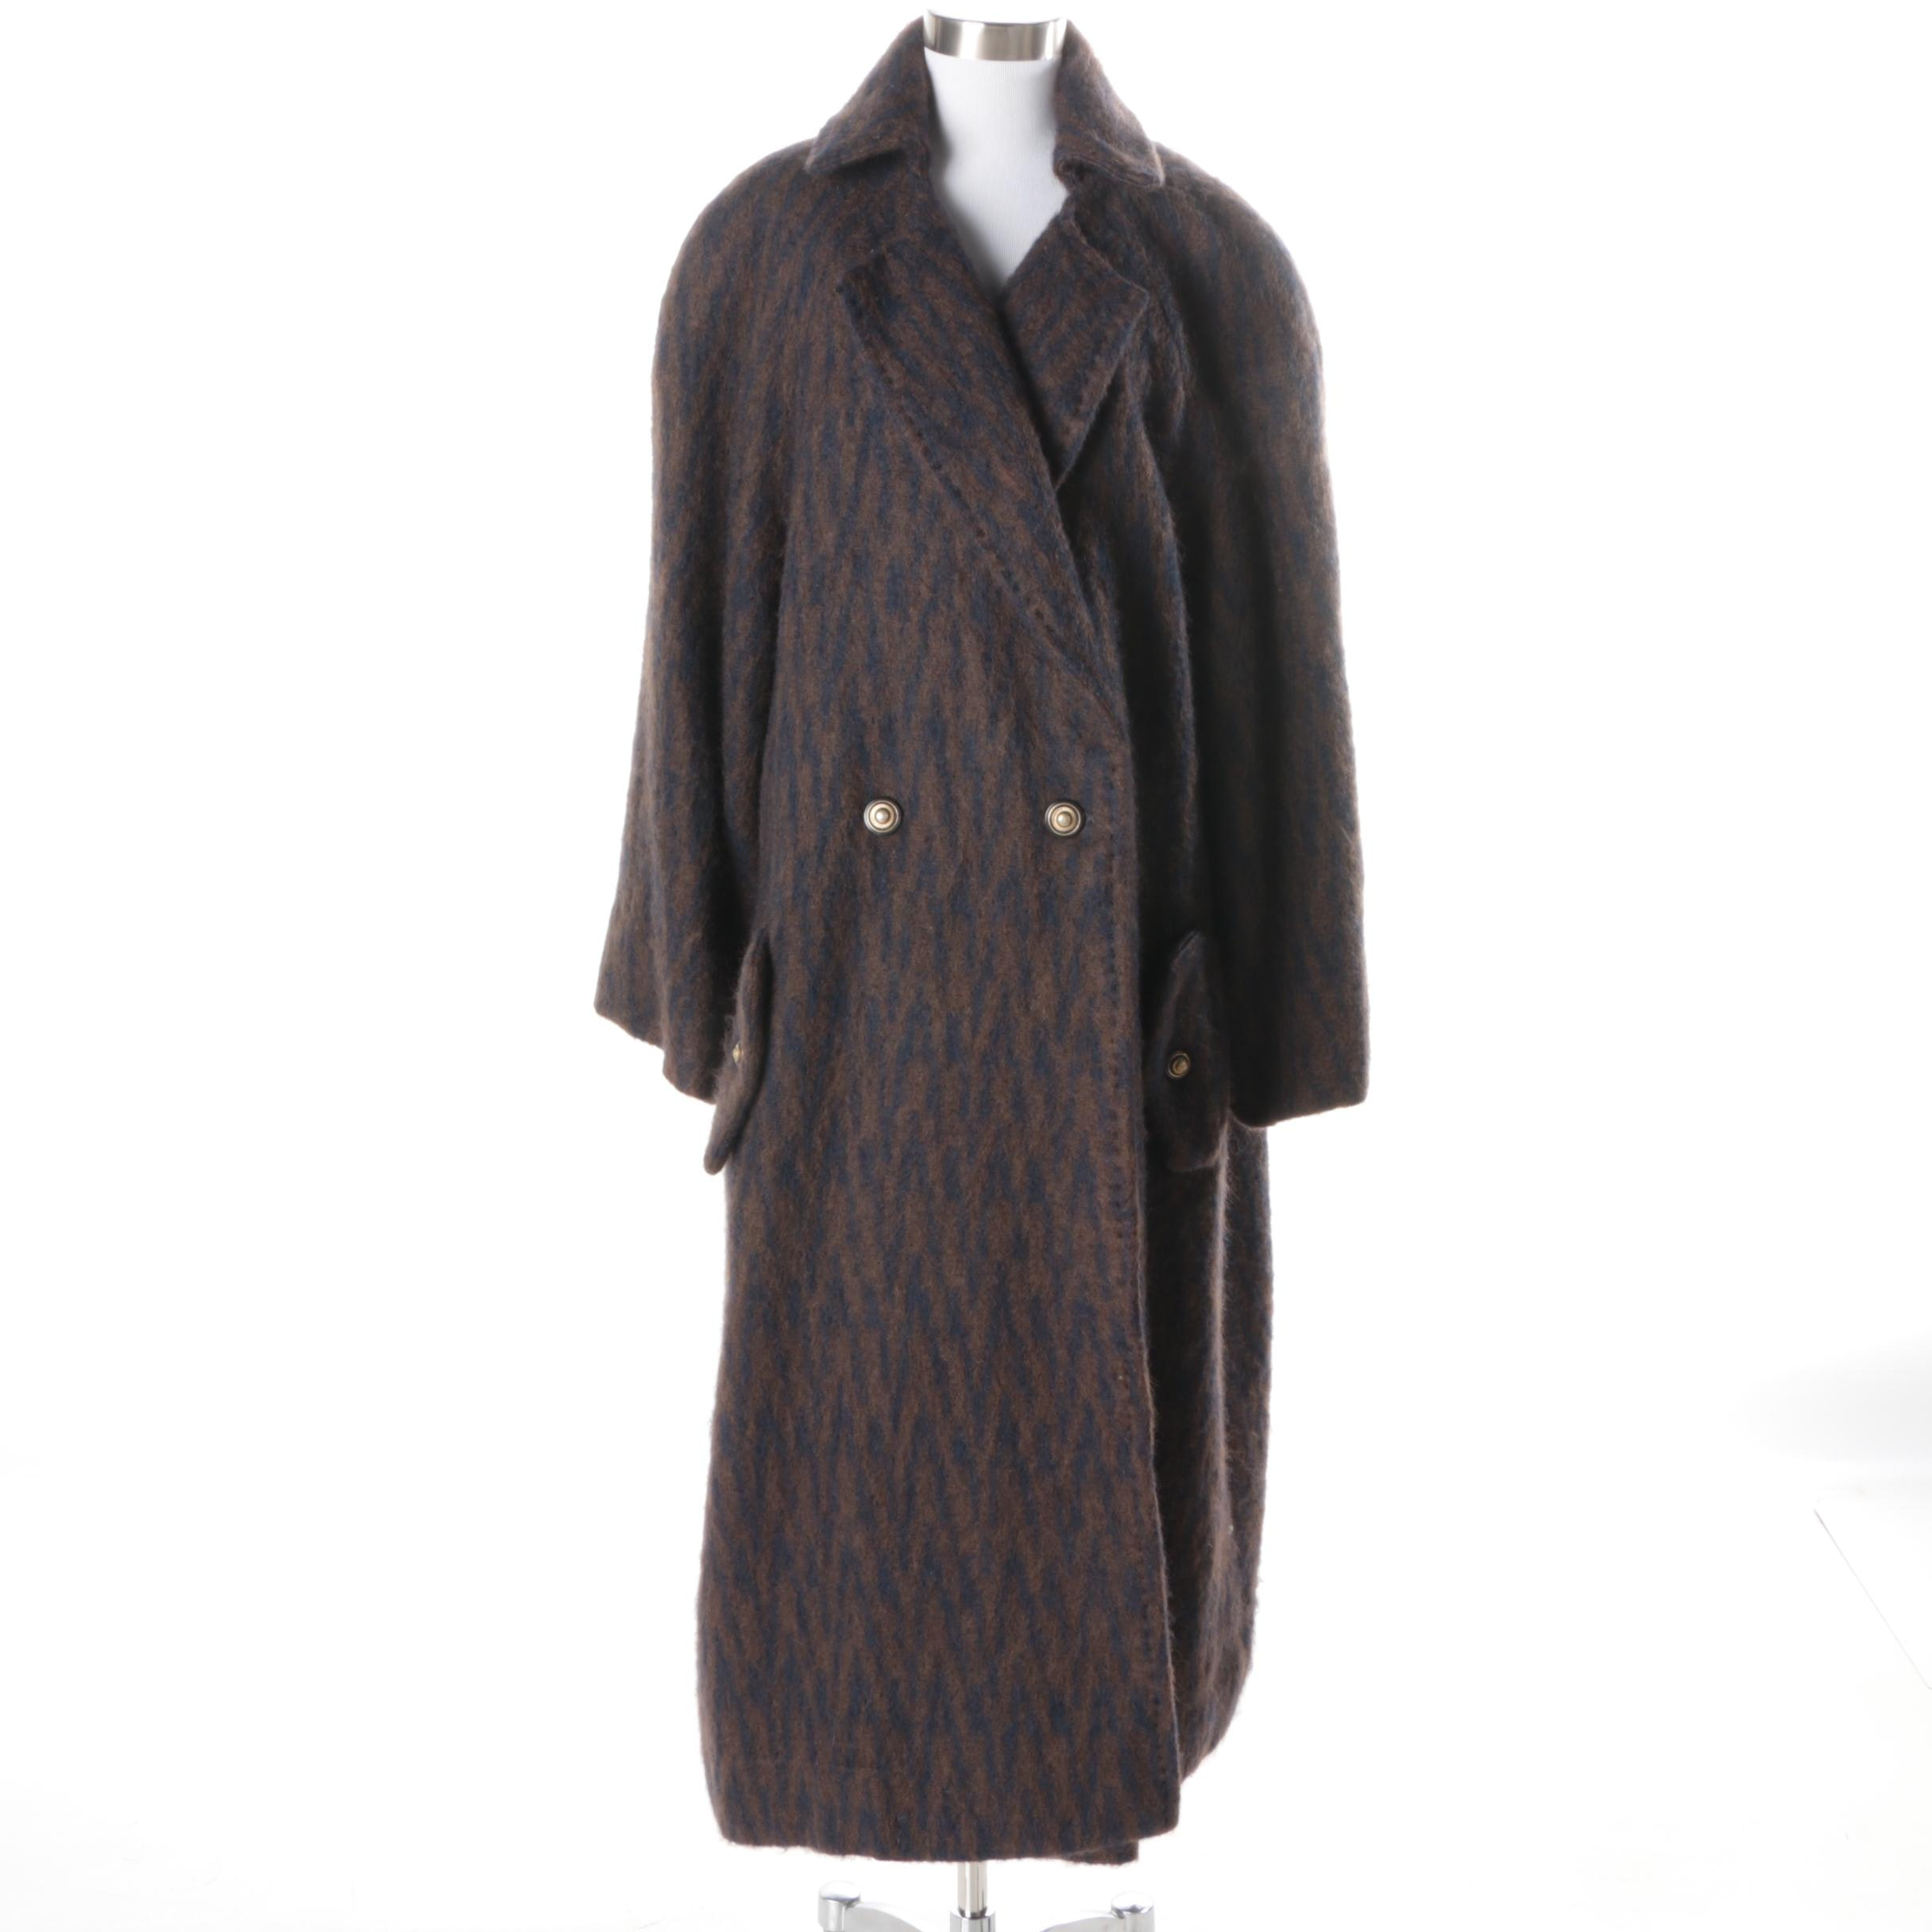 Women's Vintage Mohair Coat